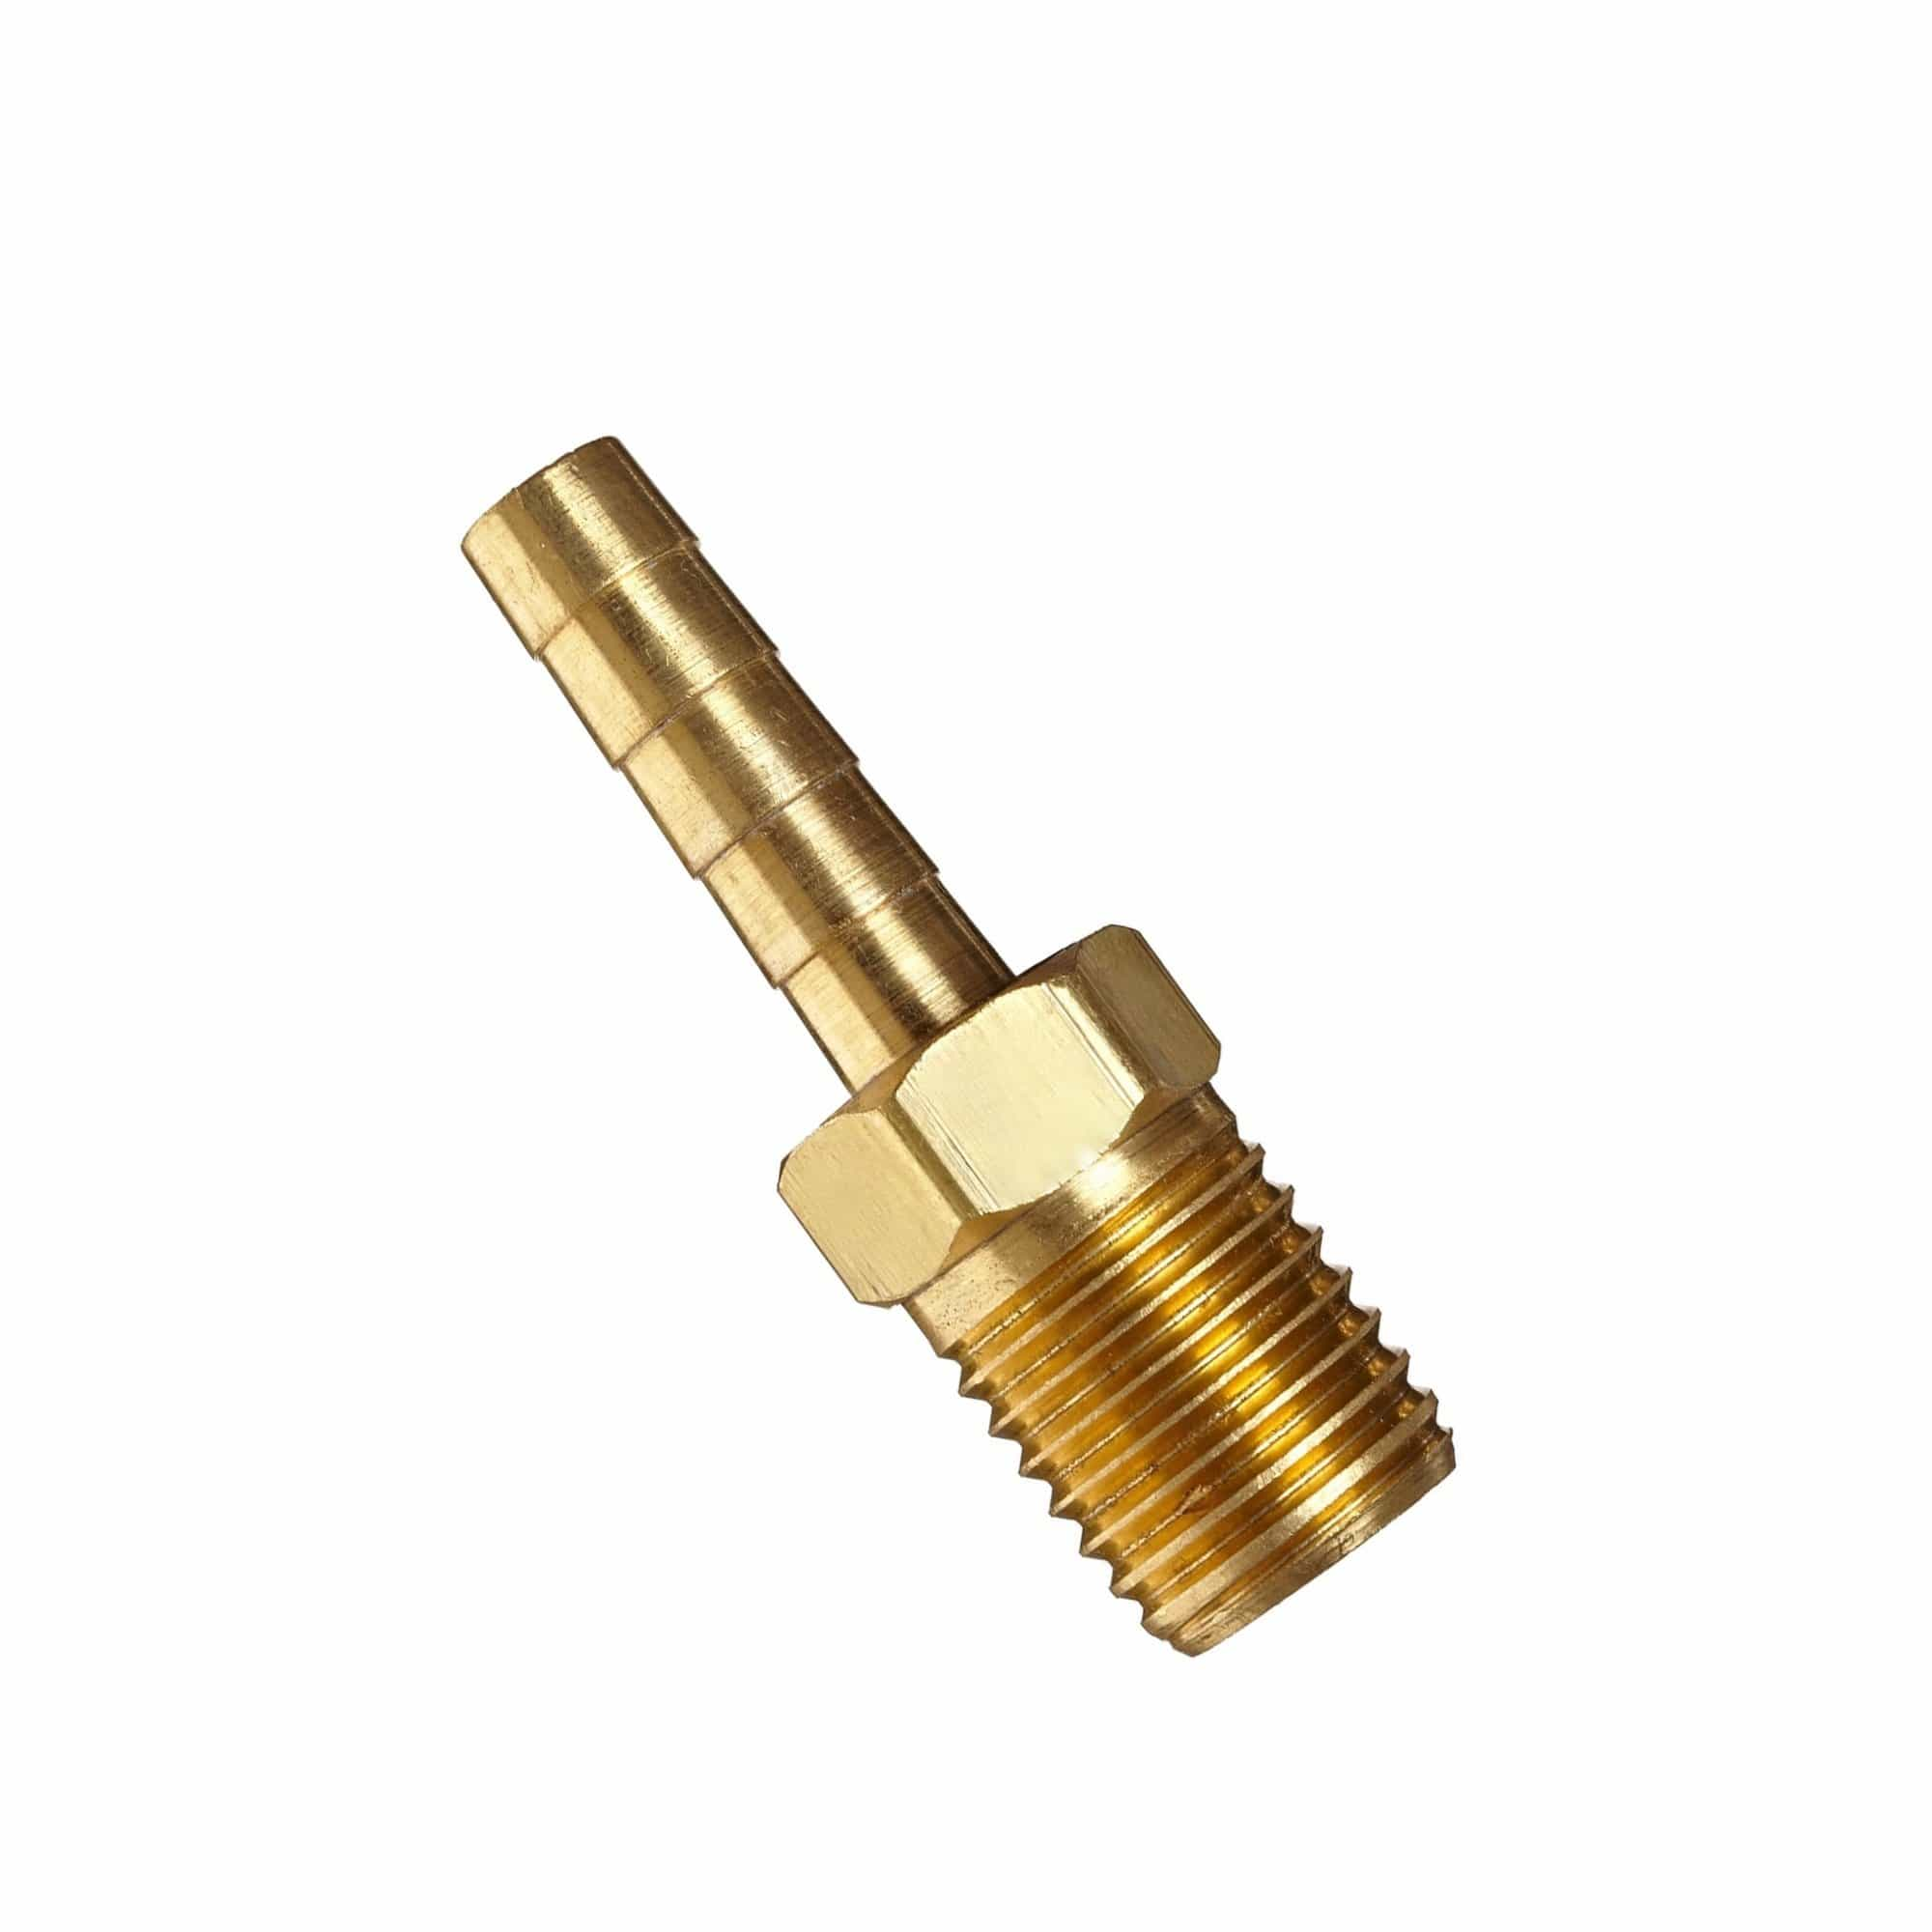 BRASS Hose Tail Threaded Connectors - Window Cleaning Warehouse Ltd